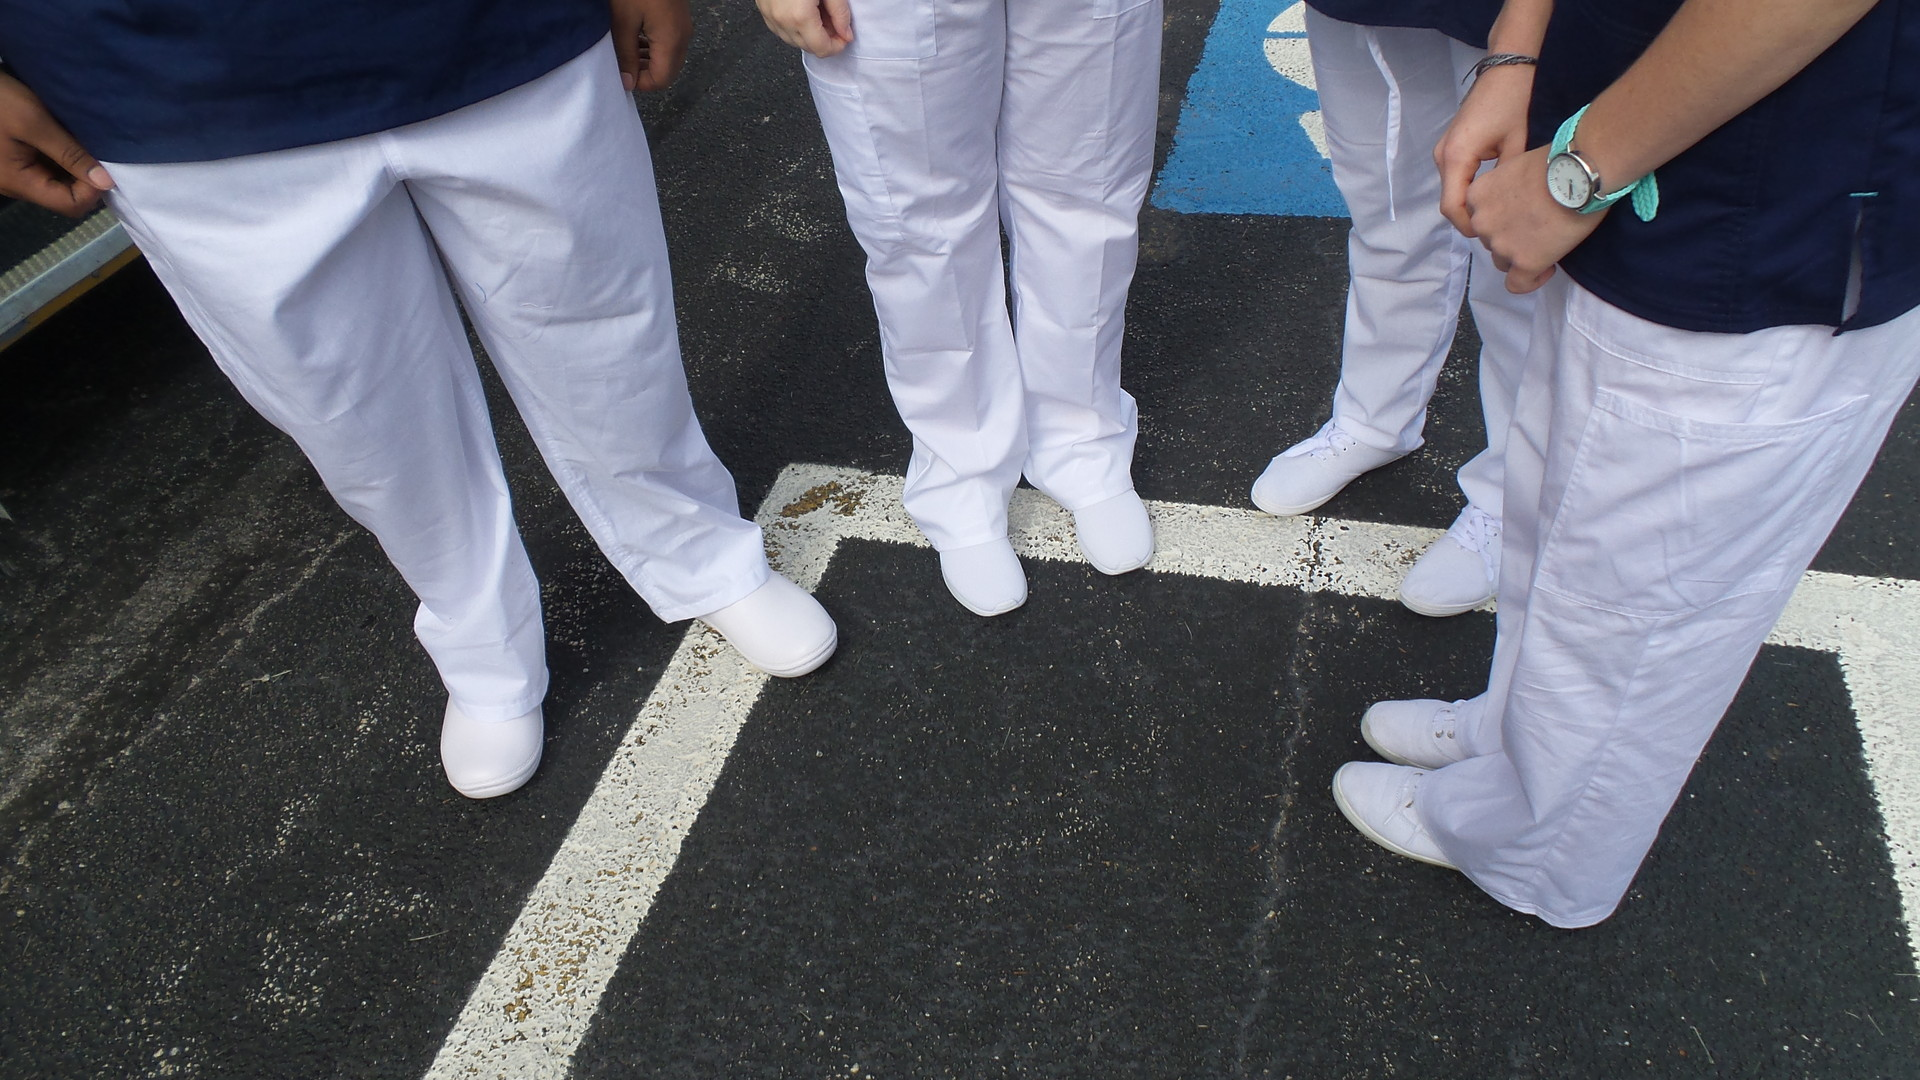 Students display white uniform shoes